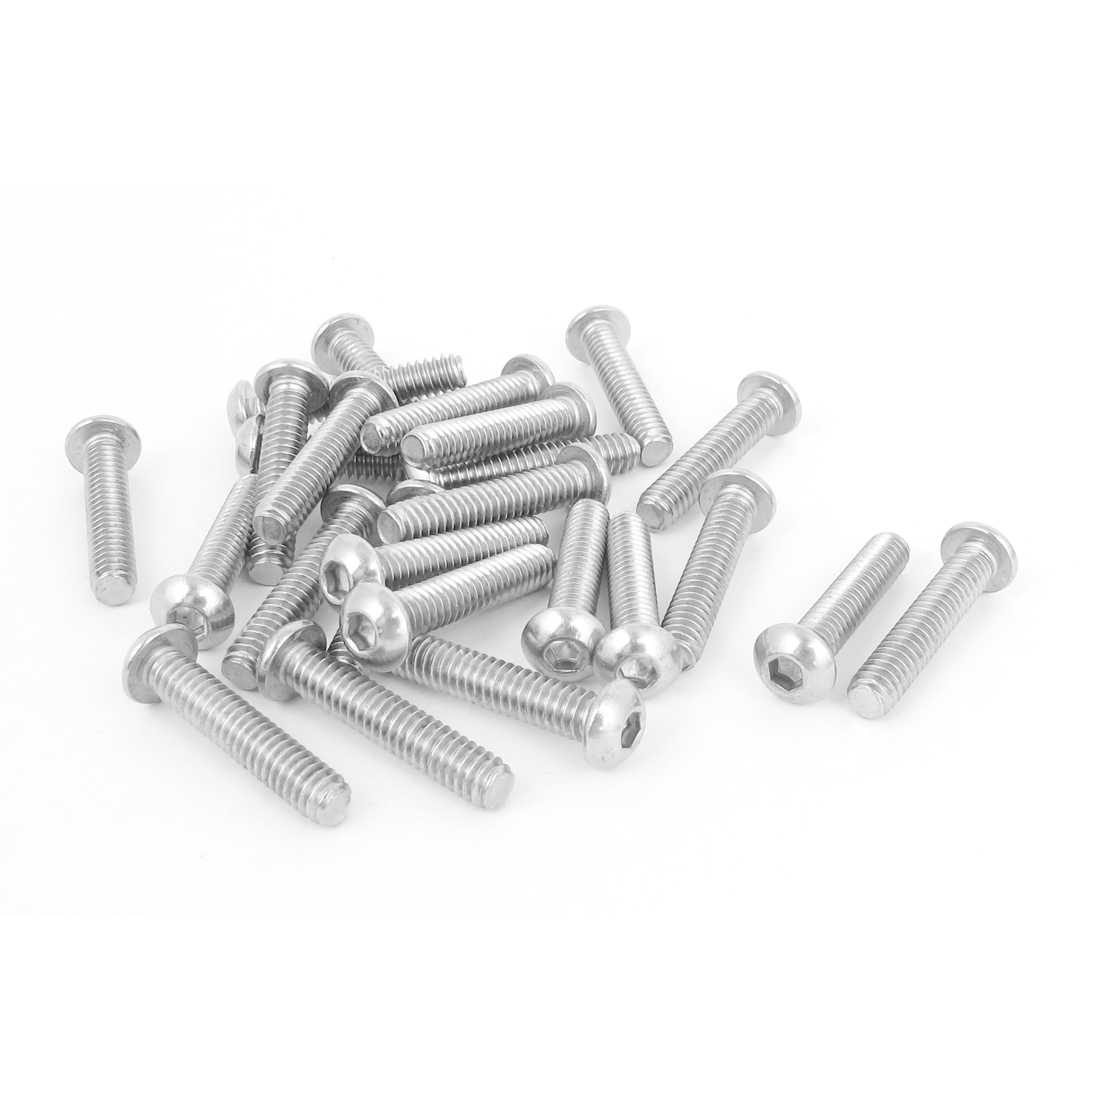 "25pcs 1/4""-20x1-1/4"" Stainless Steel Hex Socket Button Head Bolts Screws"